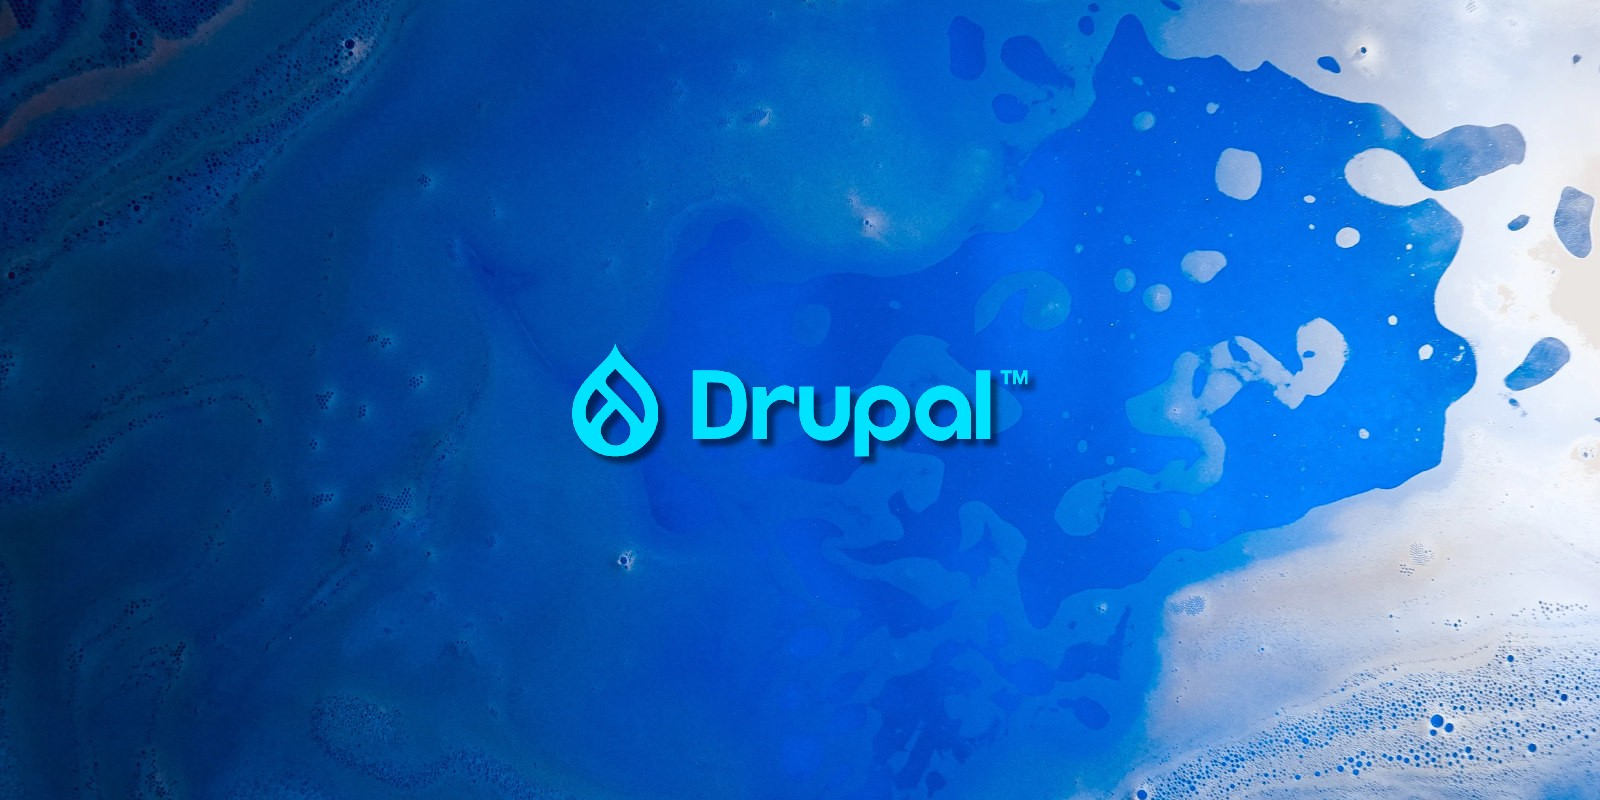 Drupal issues emergency fix for critical bug with known exploits